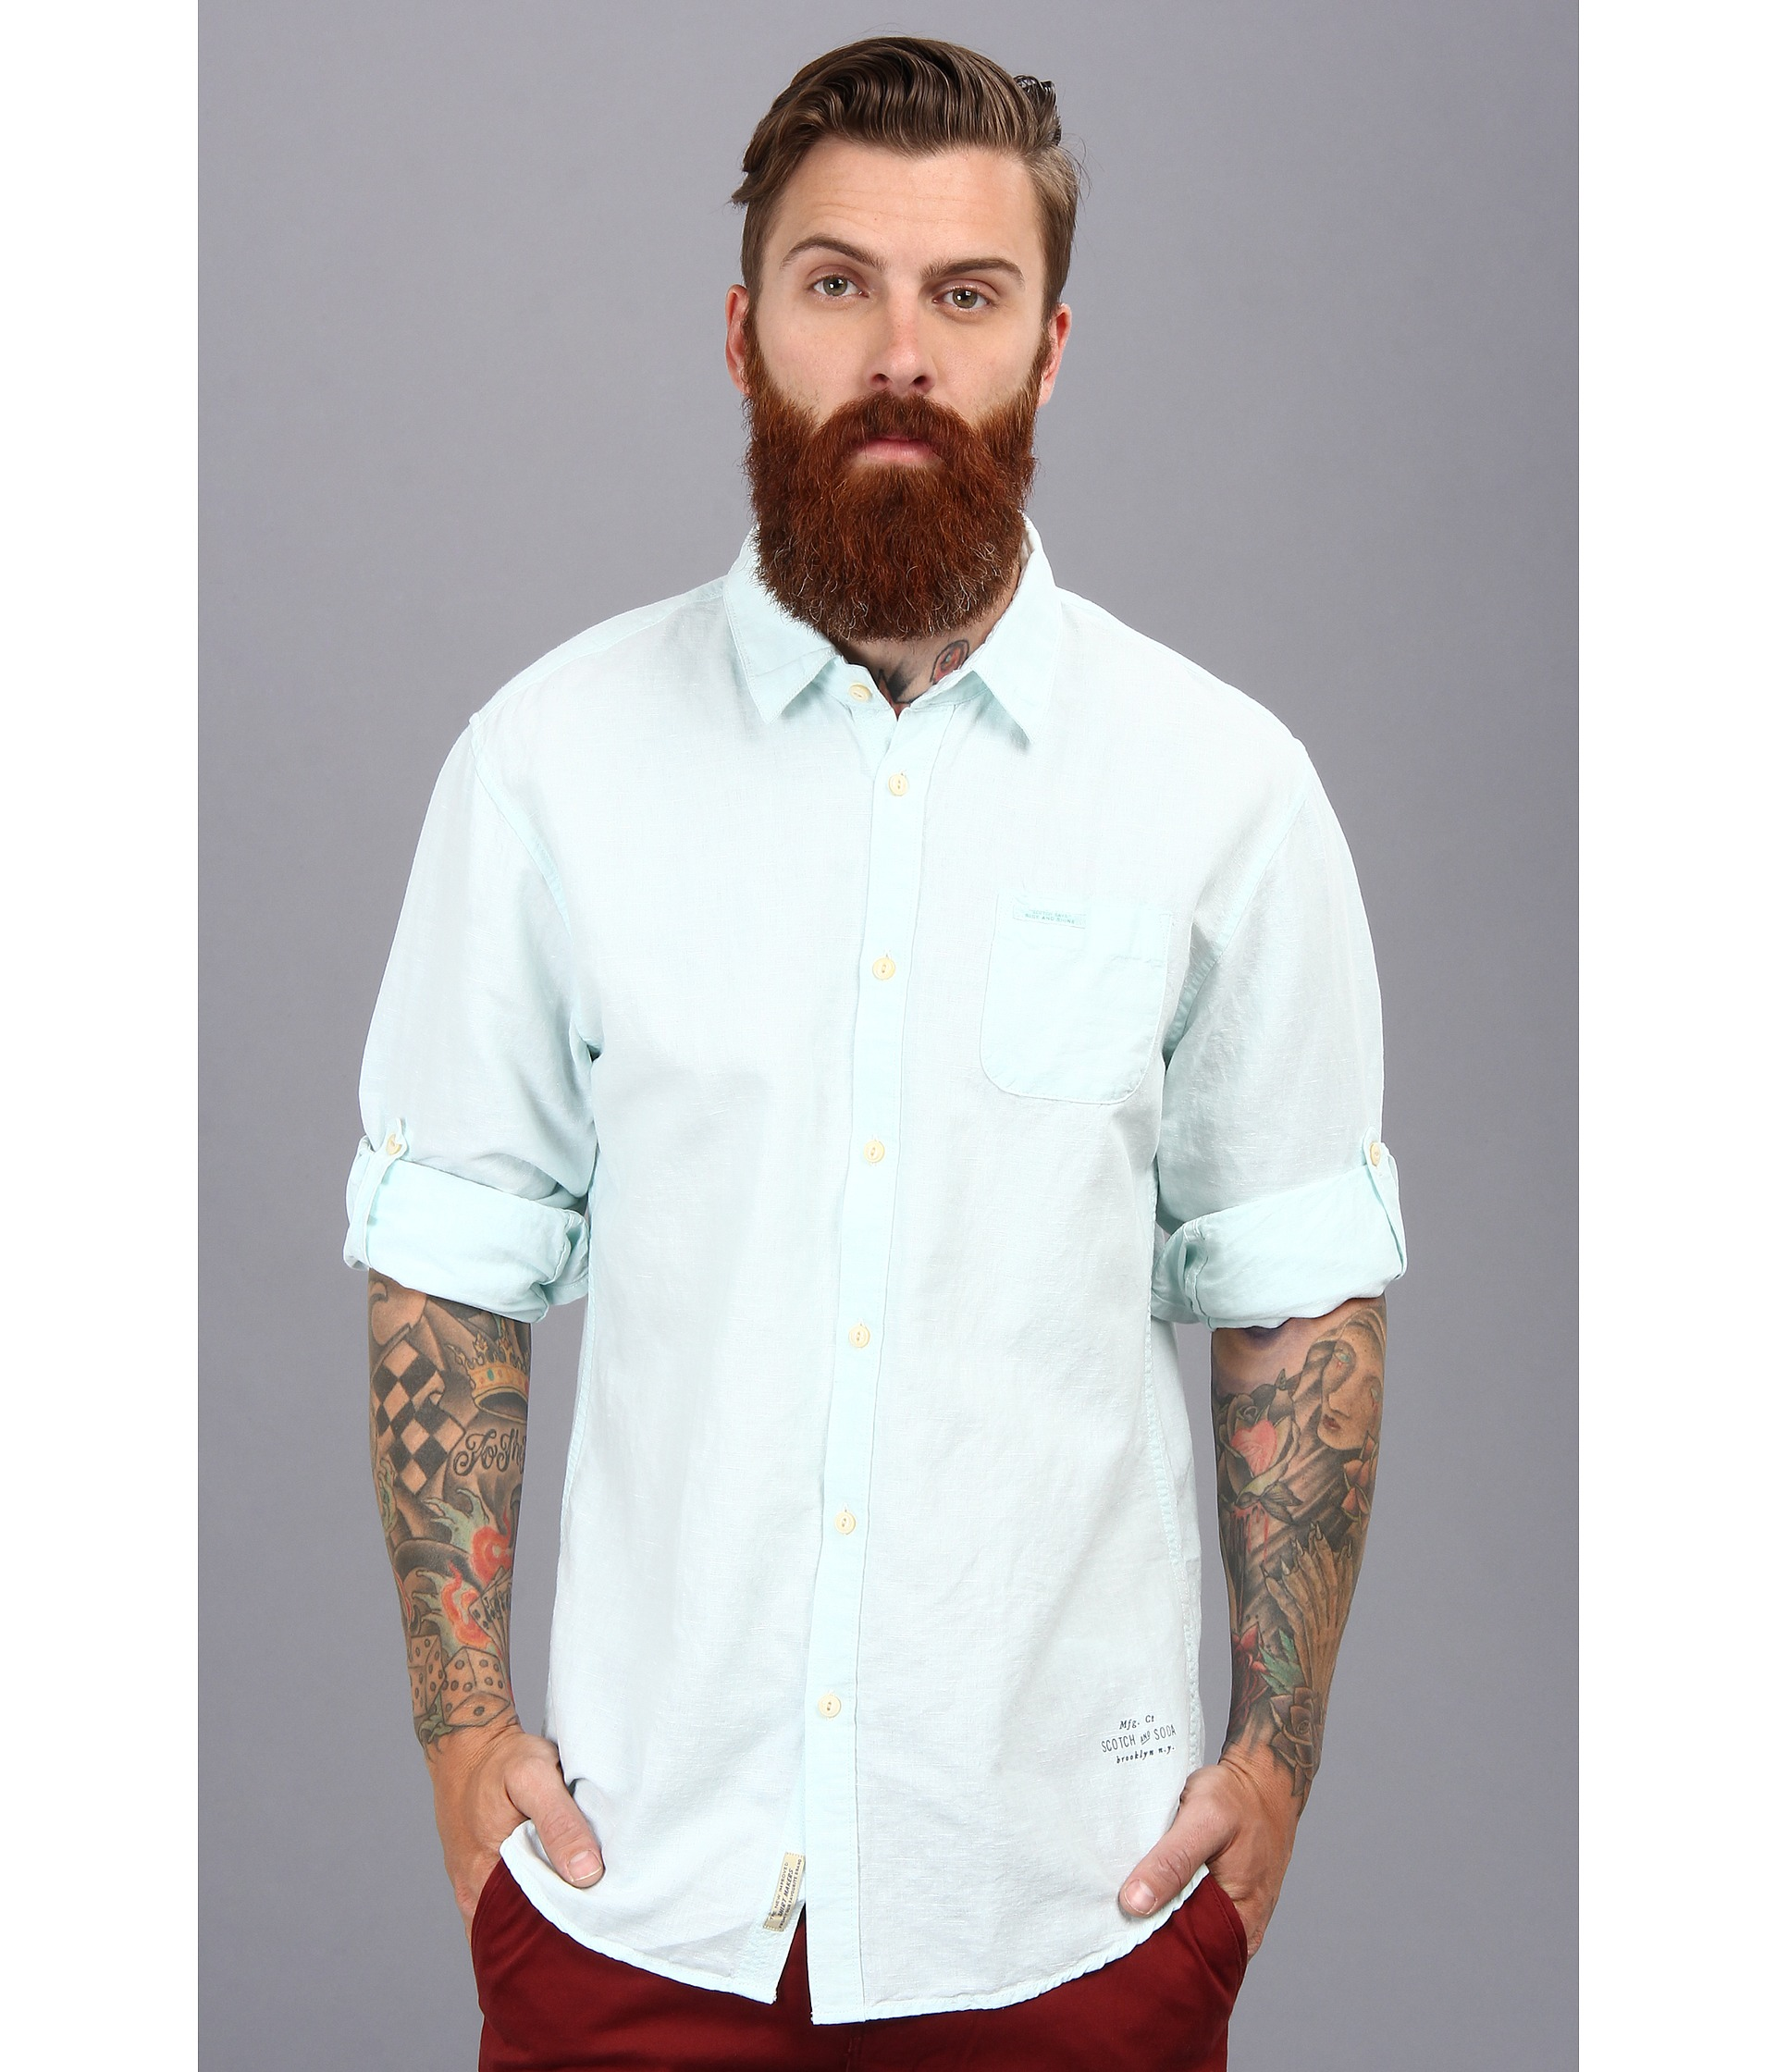 rolled shirt sleeves